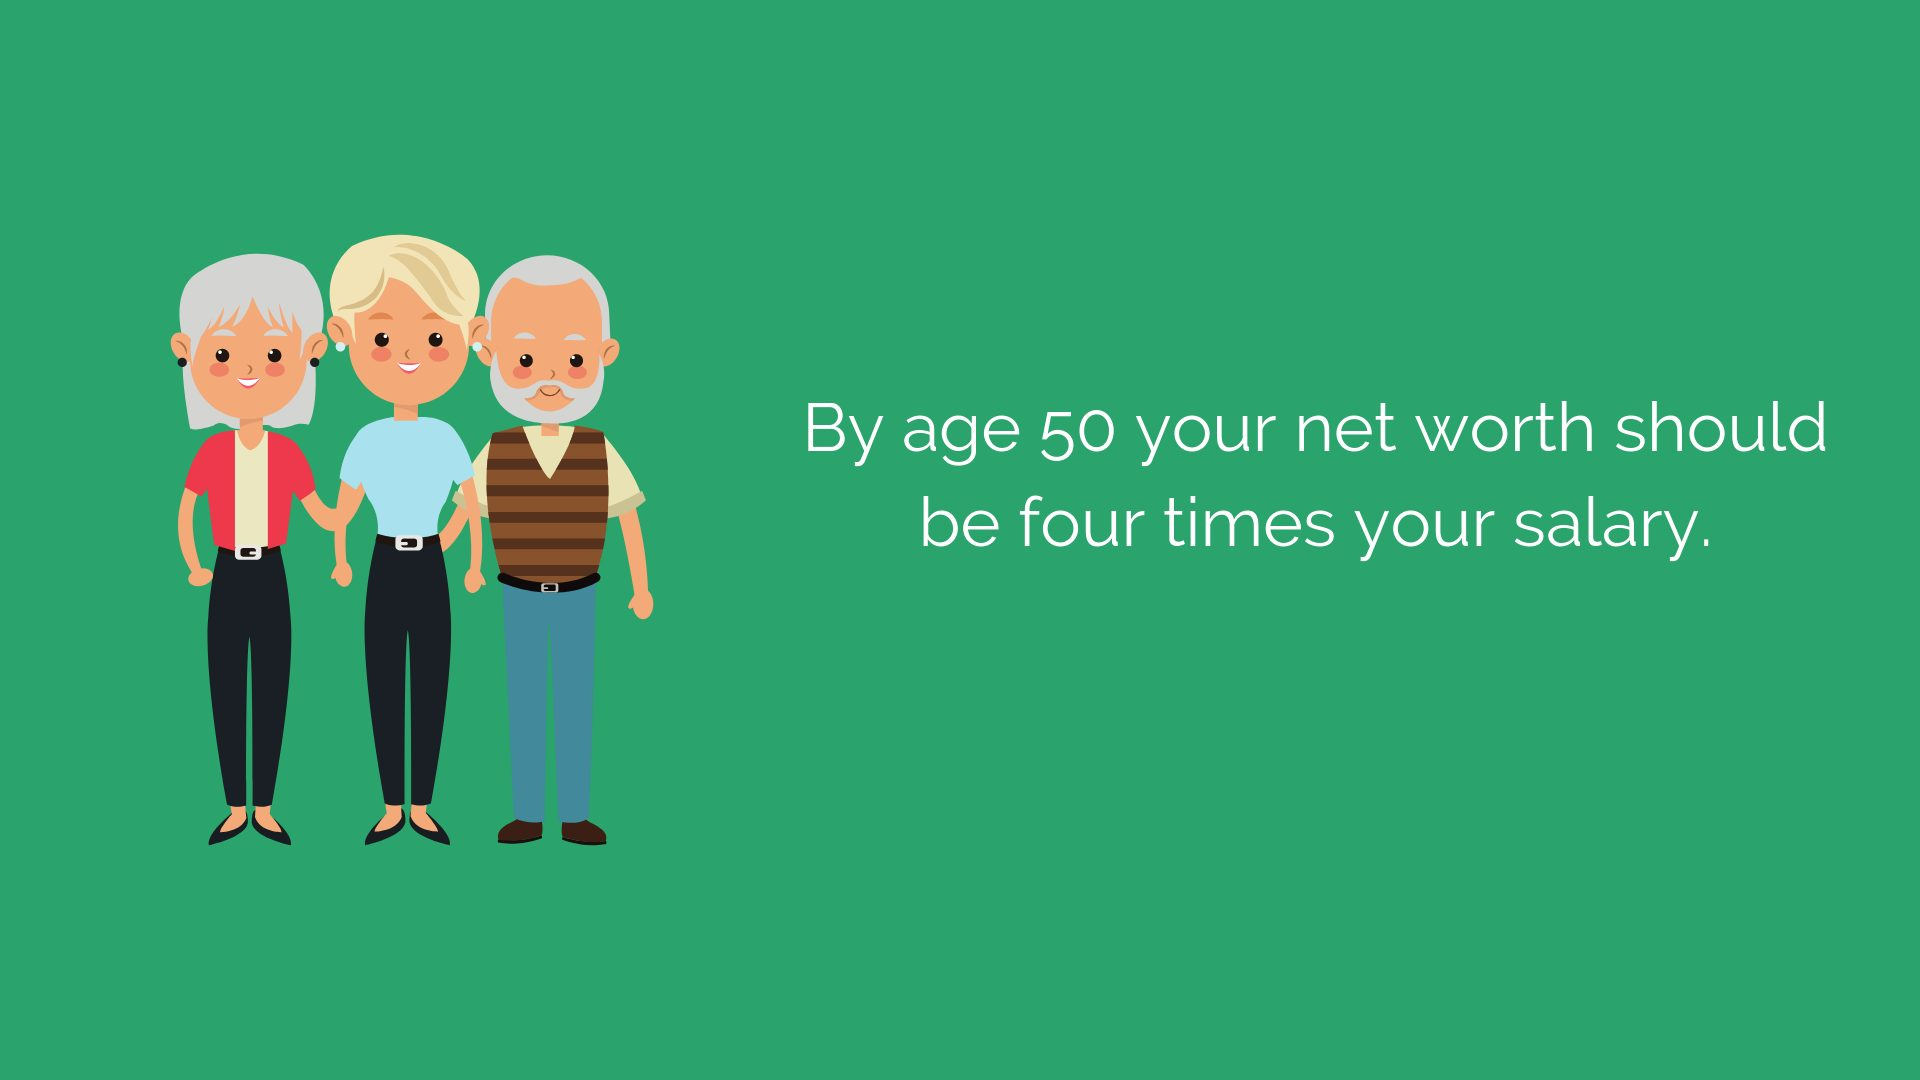 networth-by-age-50